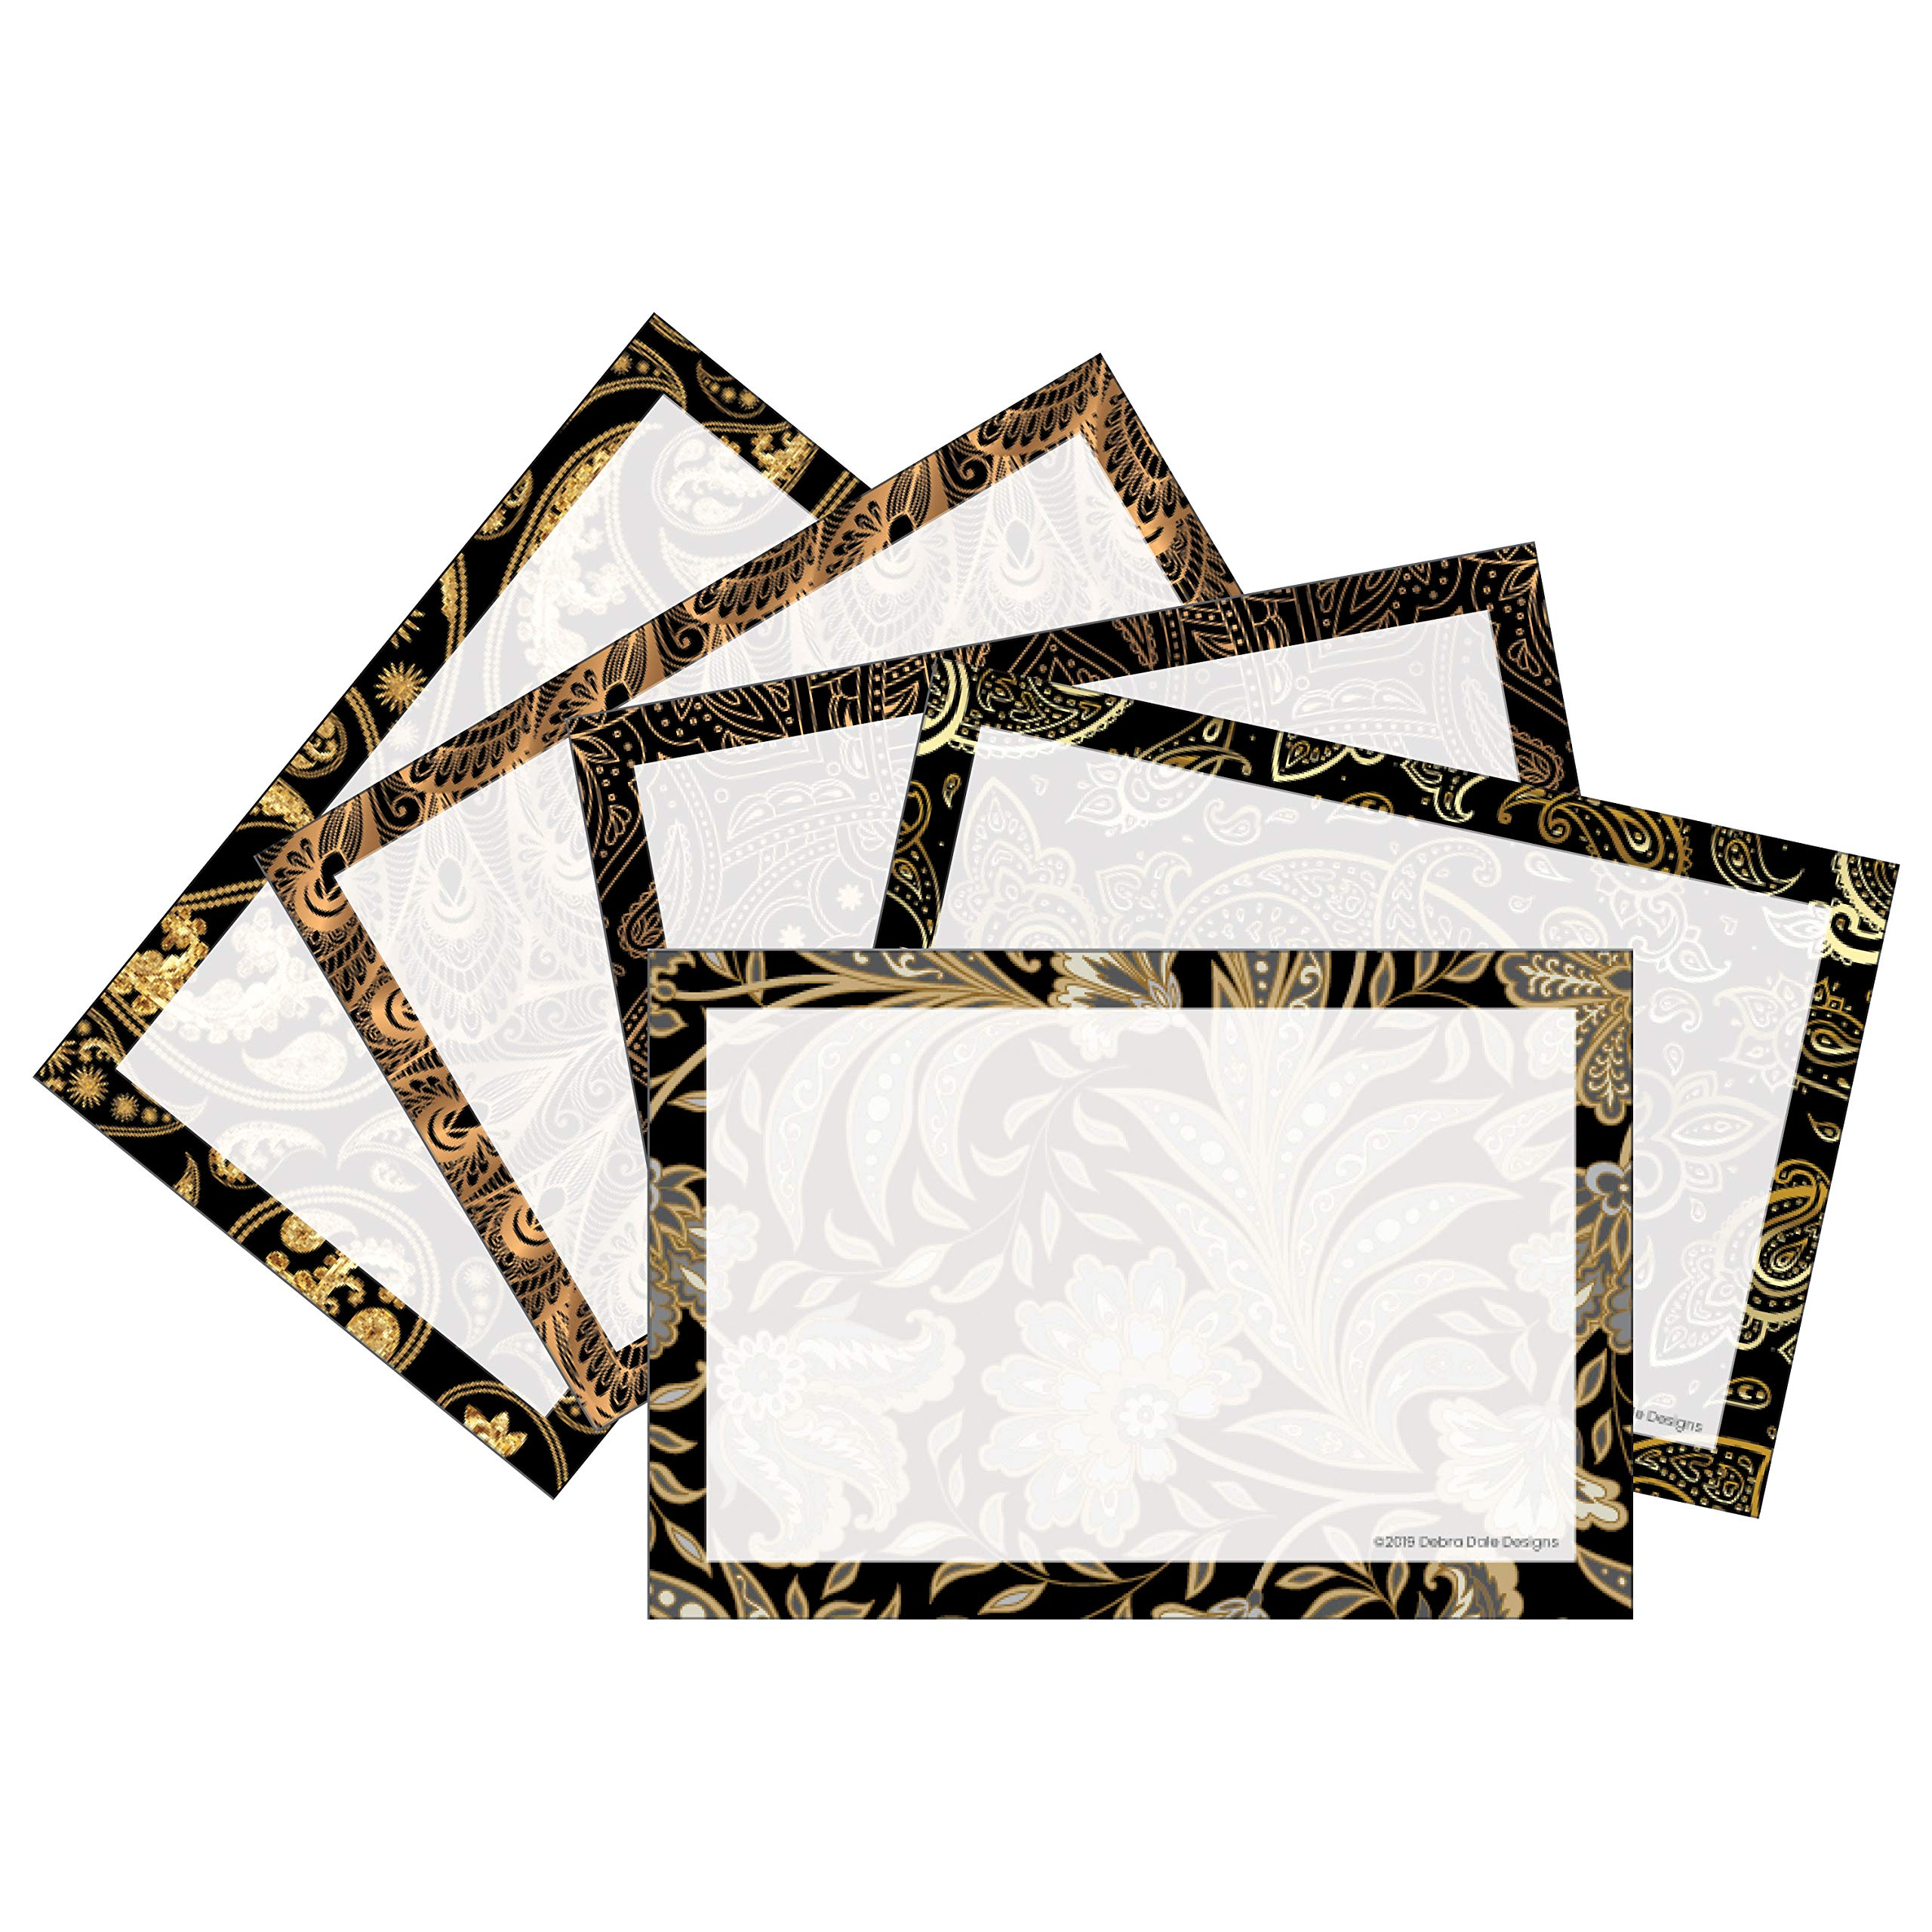 Debra Dale Designs - Unruled Index Cards With Black and Gold Printed Border - 200 Cards - 4'' x 6'' Inches - Premium 140# Heavy Thick Index Card Stock by DEBRADALE DESIGNS